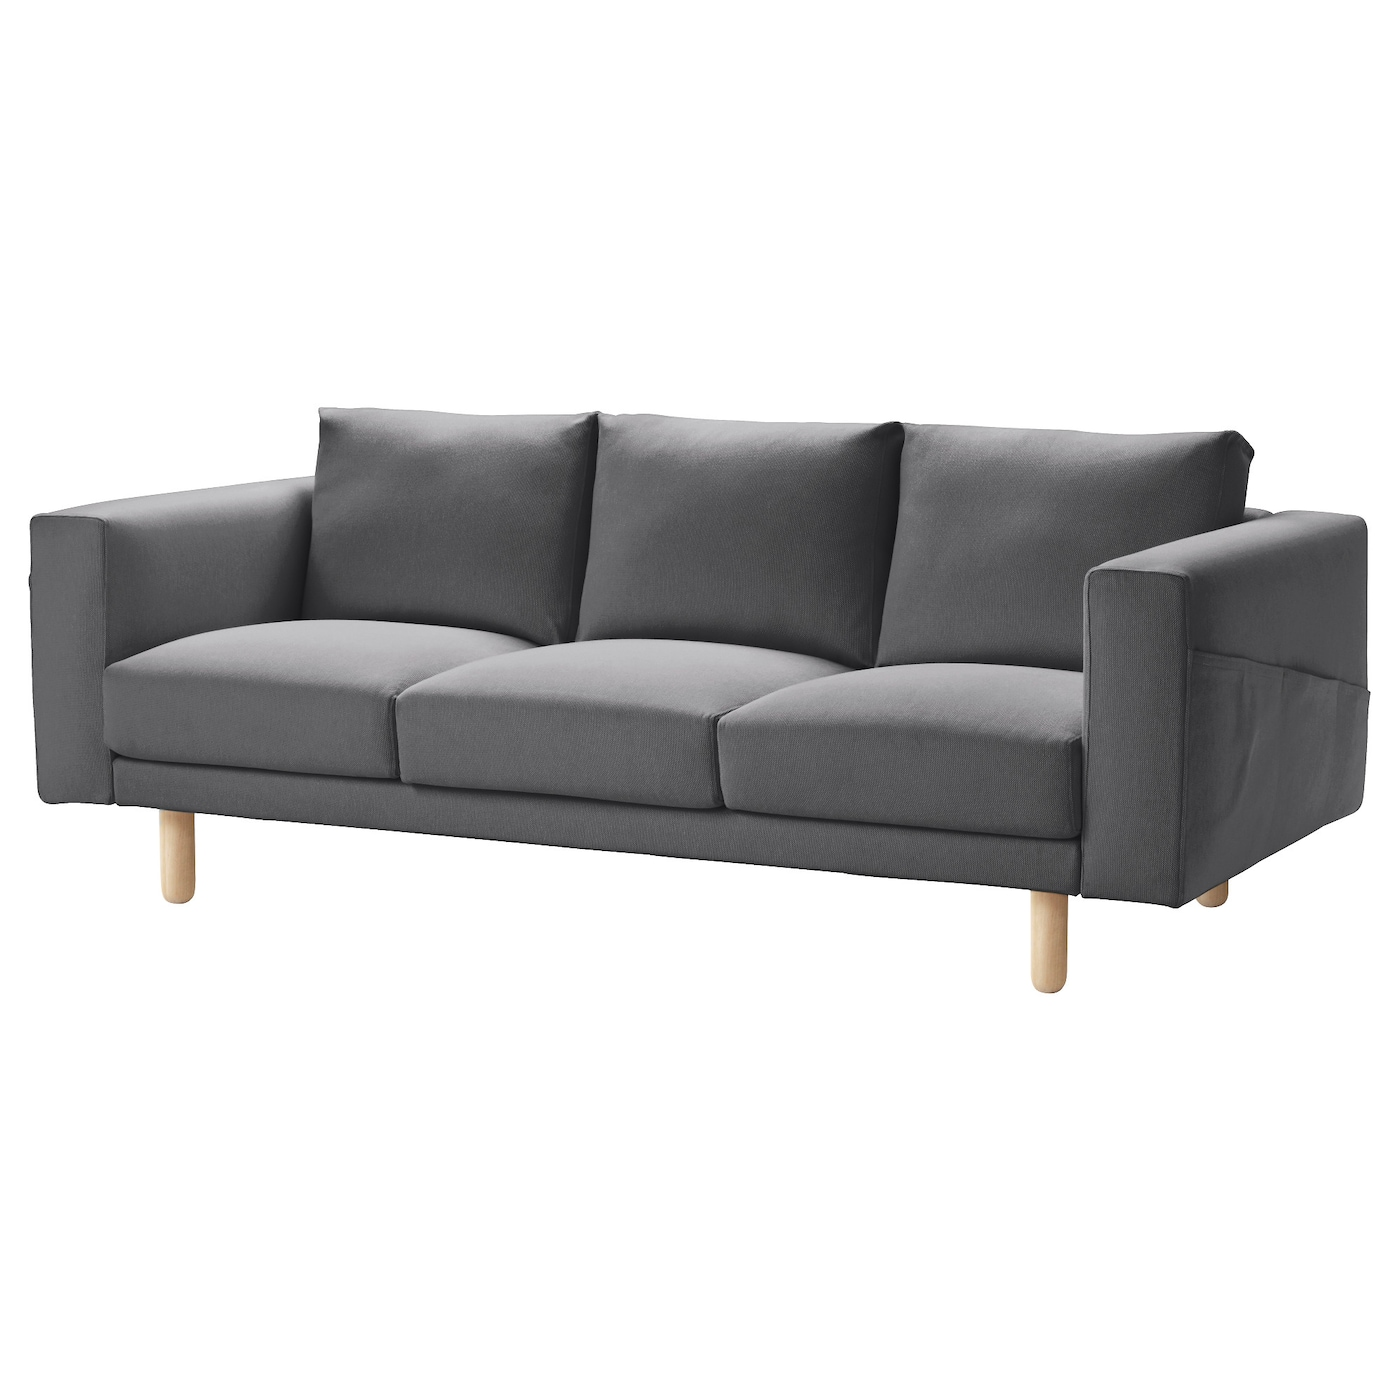 Norsborg three seat sofa finnsta dark grey birch ikea for Ikea sofa rosa